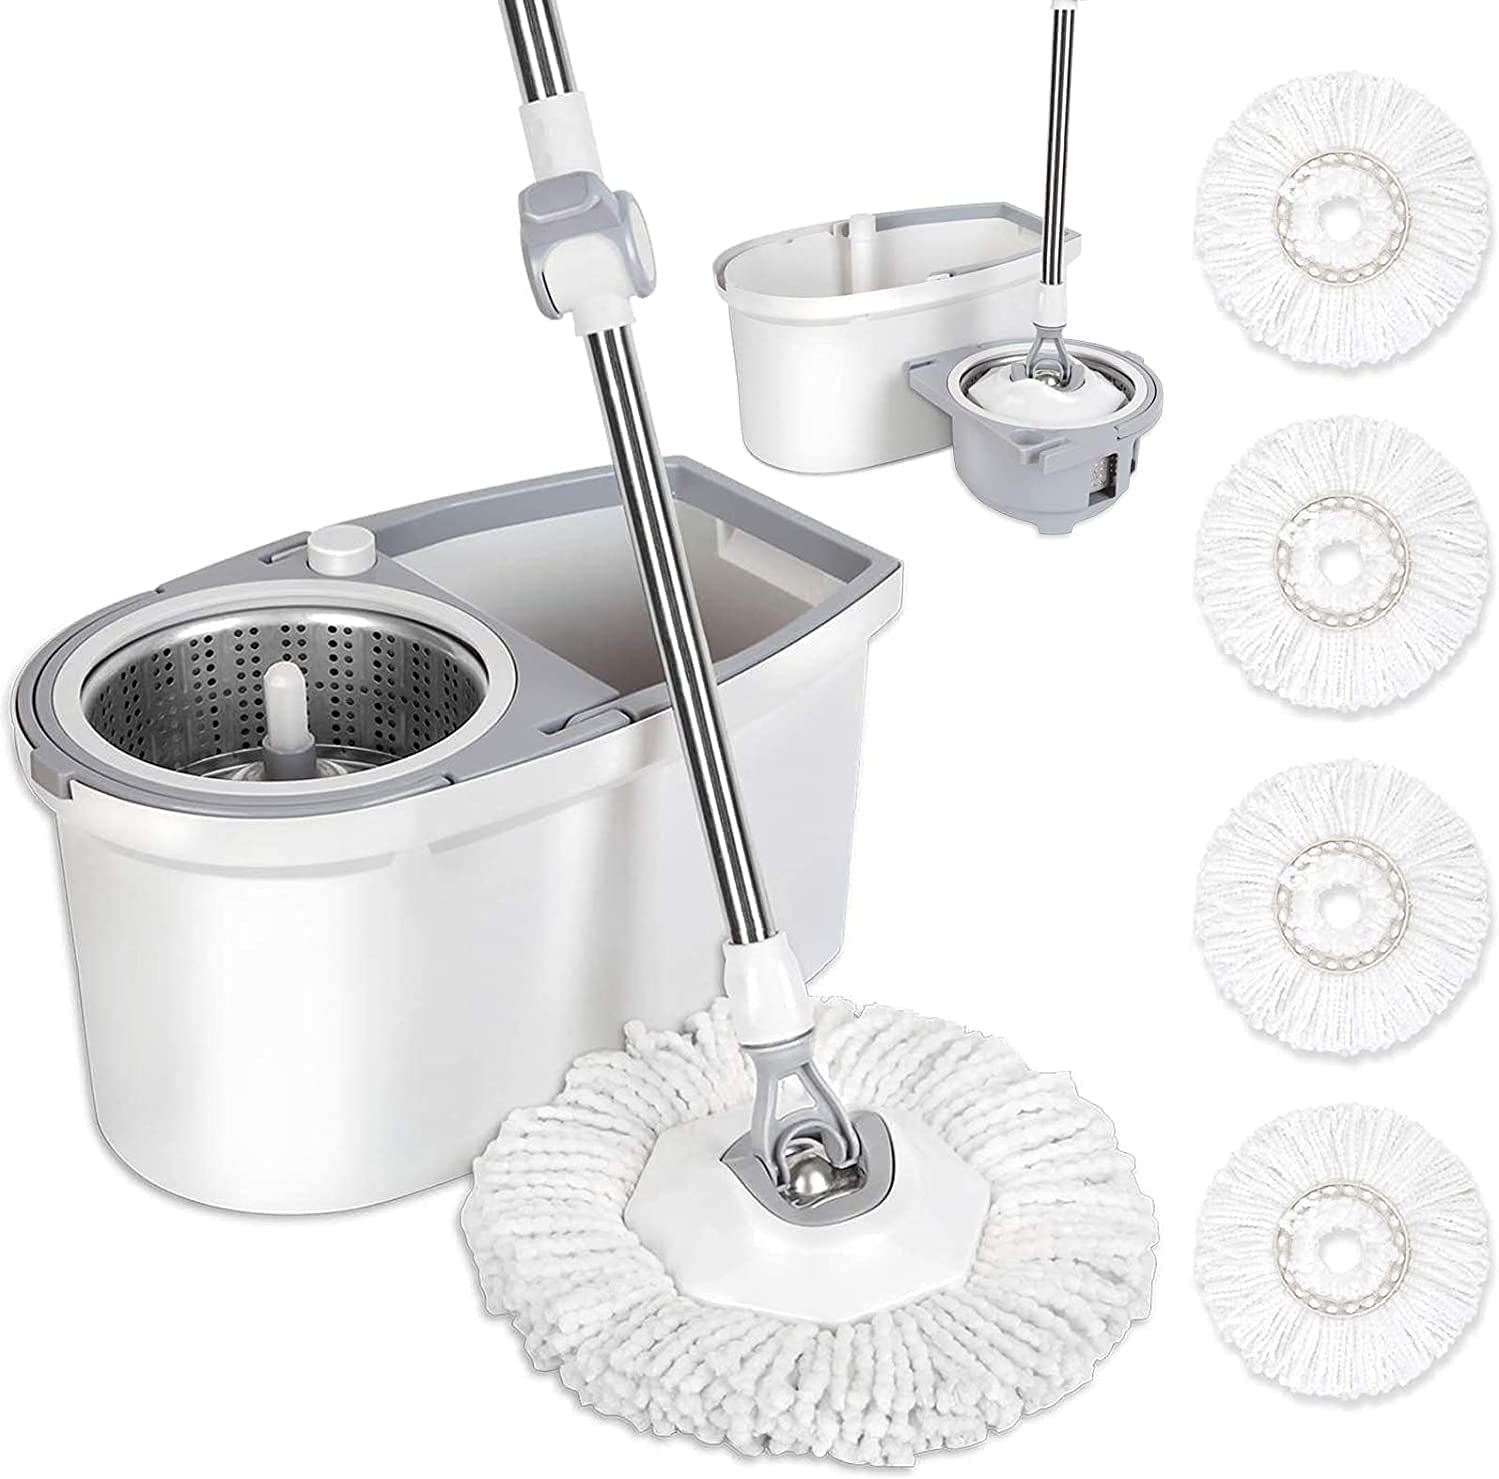 BOOMJOY Now on sale Spin Mop Bucket Floor with Wrin and Cleaning Choice